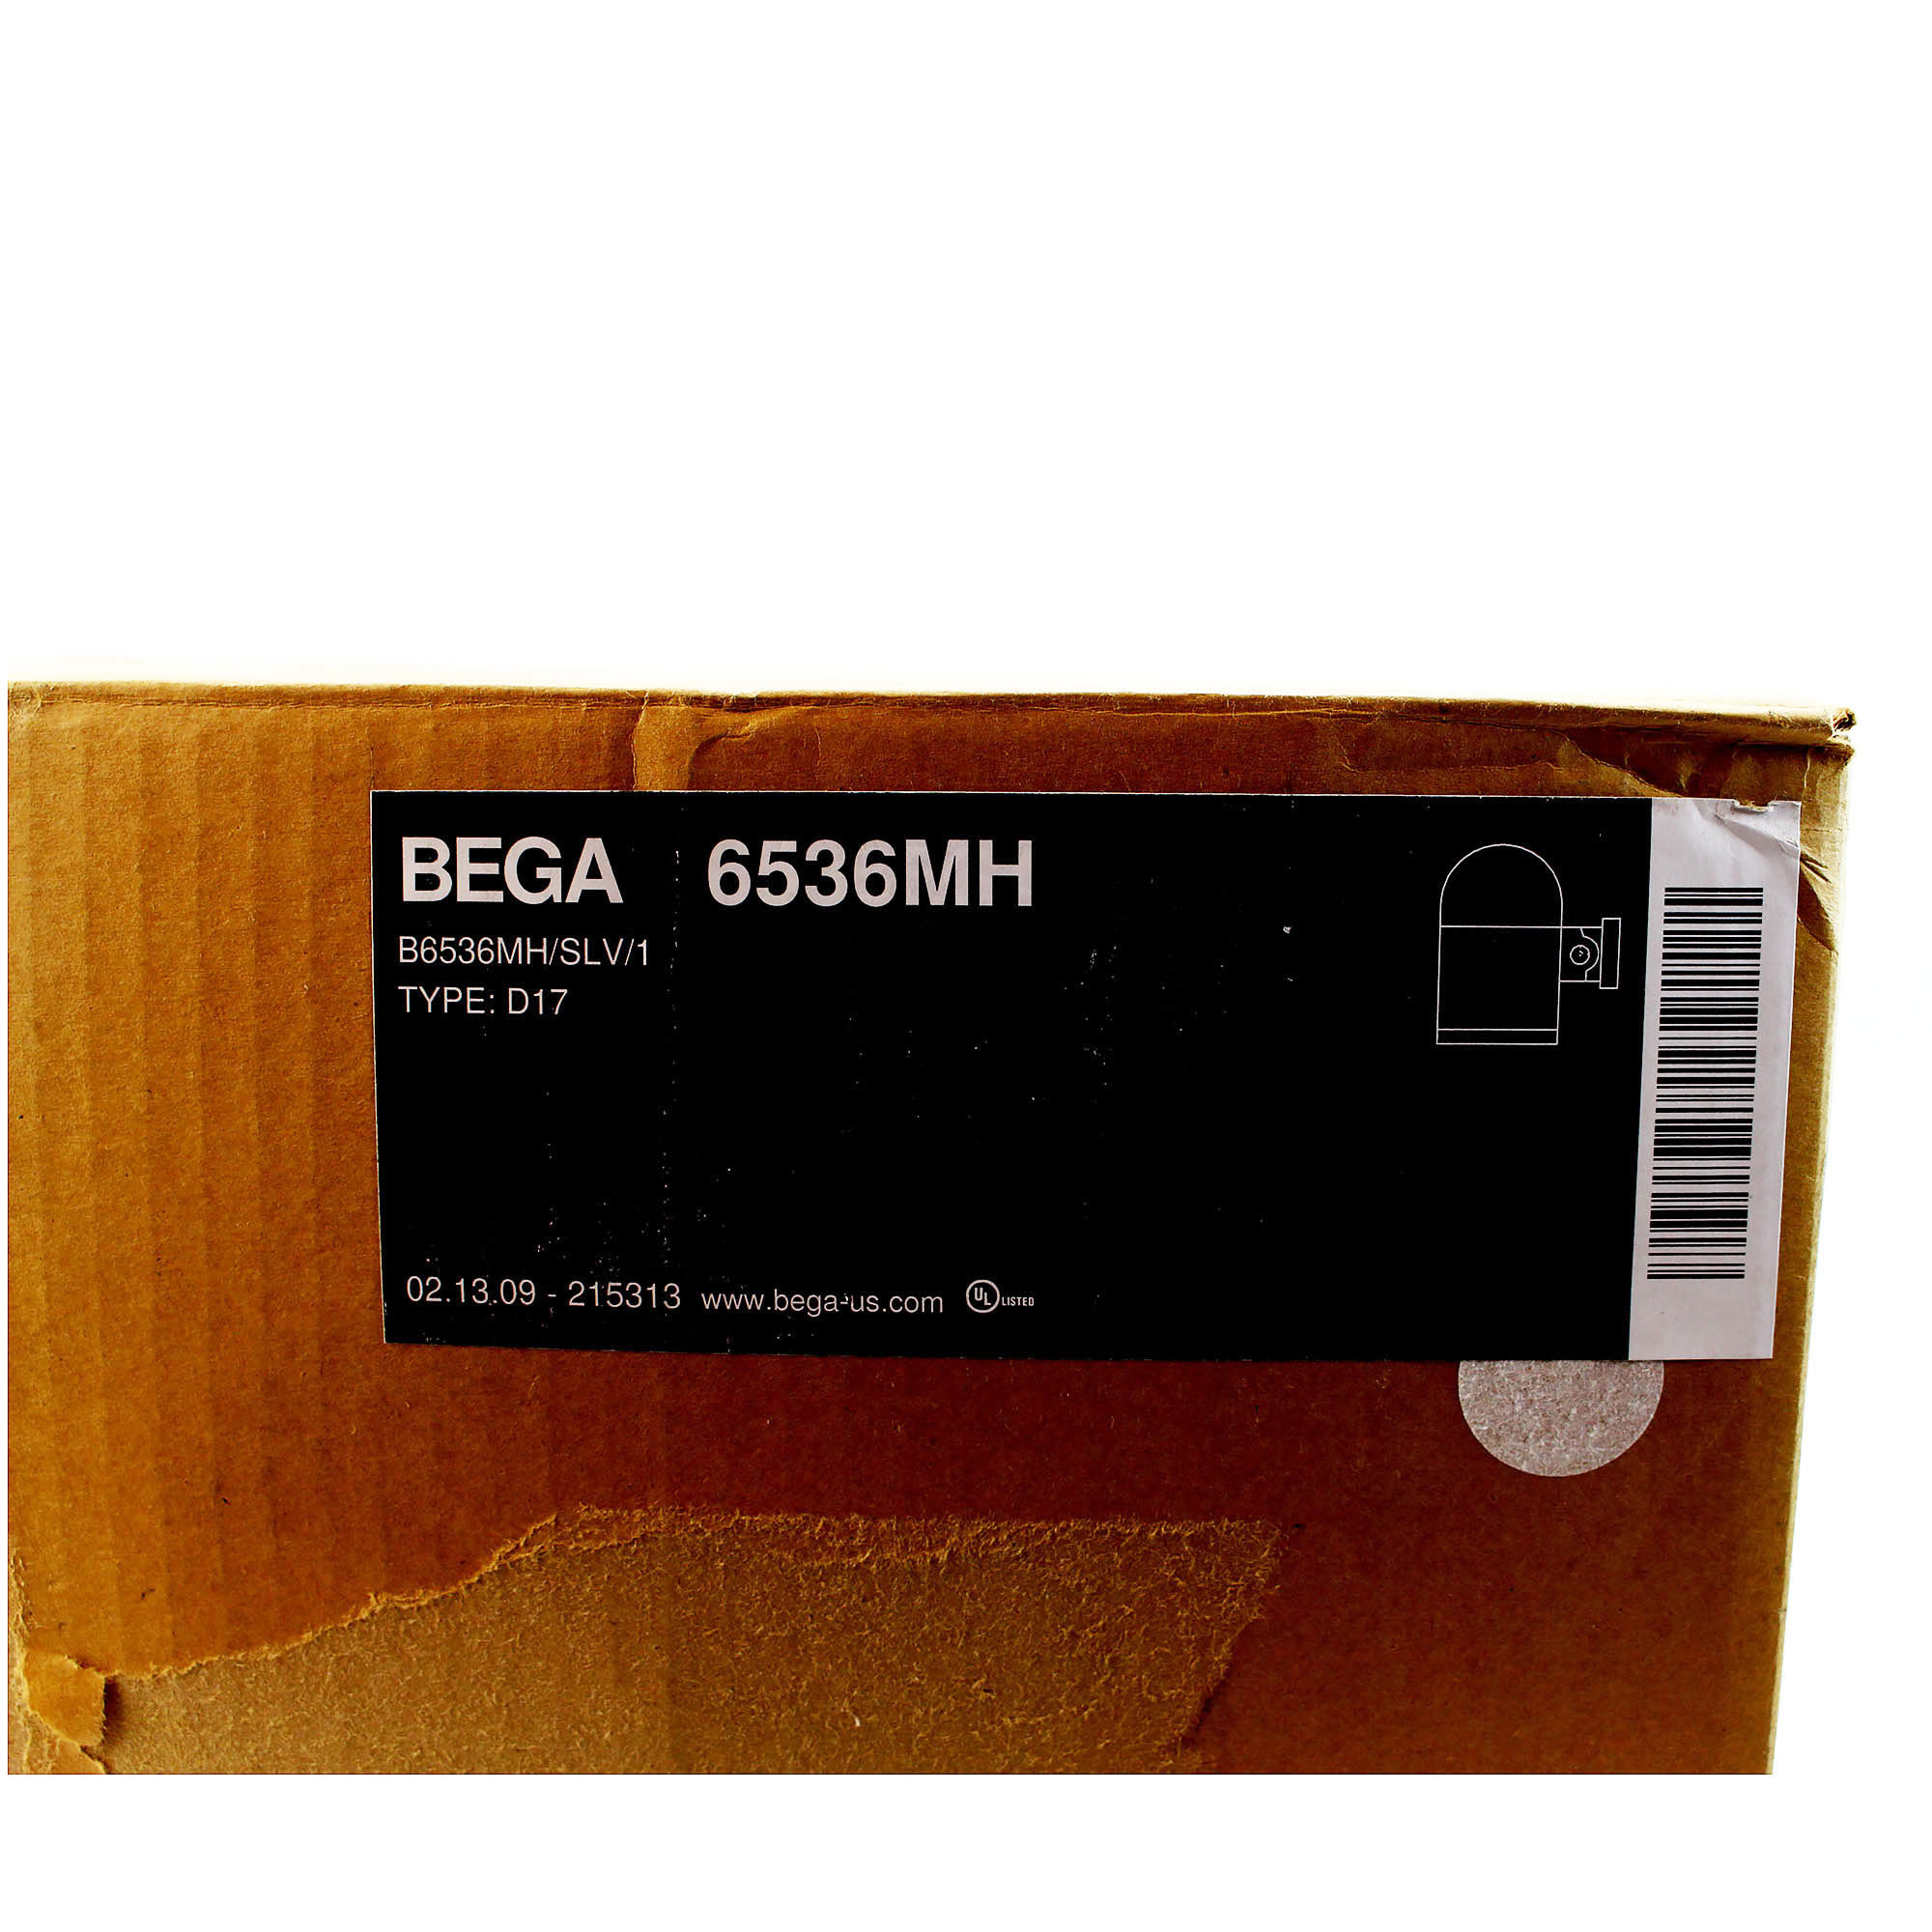 BEGA LIGHTING 6536MH WALL LUMINAIRE DOWNLIGHT OUTDOOR SCONCE LIGHT, GRAPHITE eBay